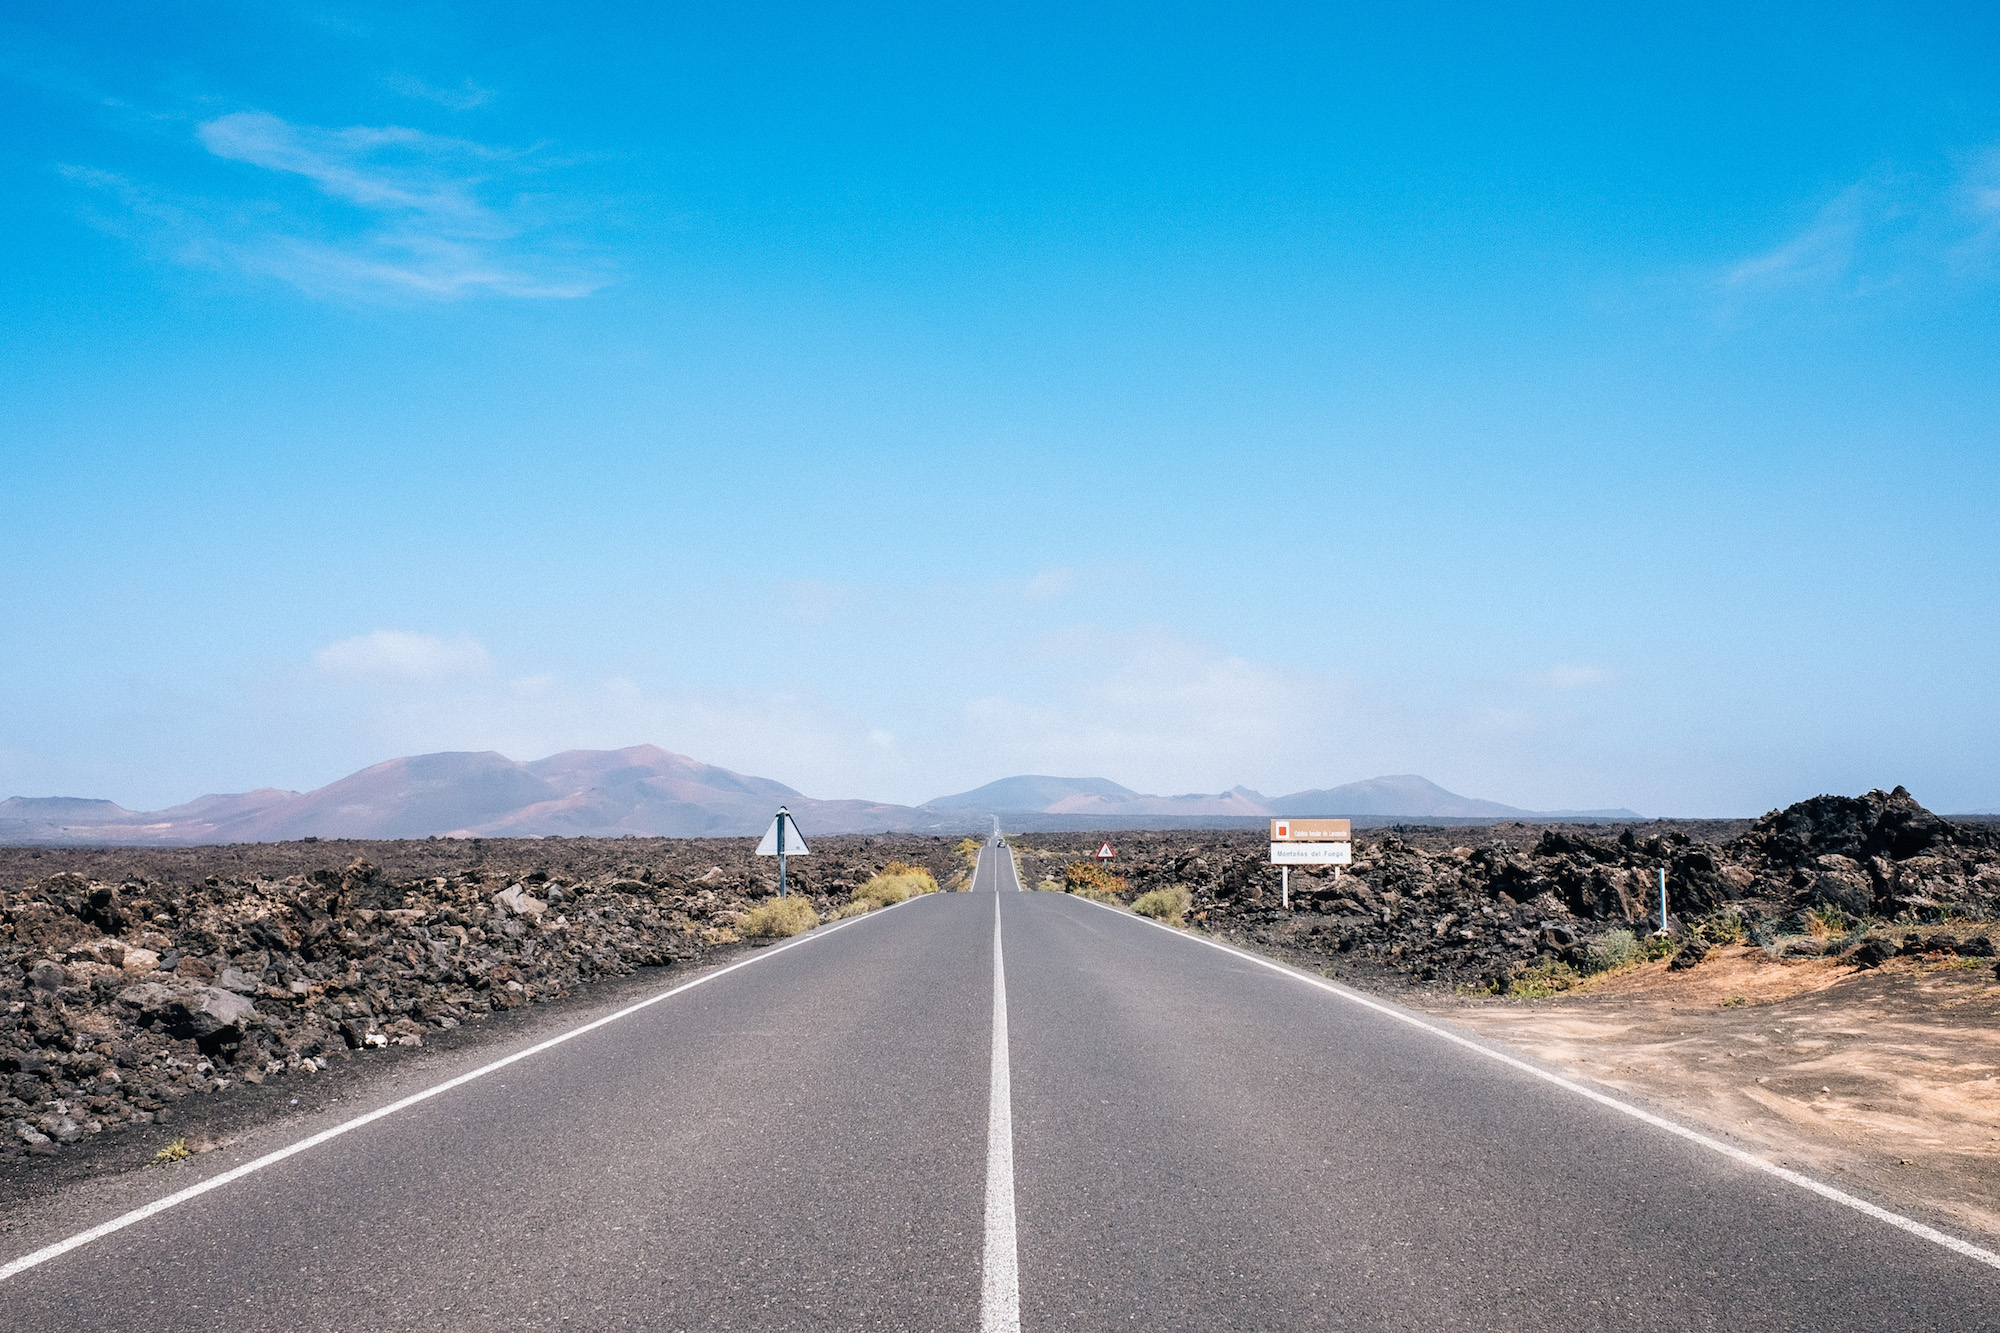 LZ-30 - There are some incredible roads cutting through hills, volcanoes, deserts and lava fields, and driving through them was a great way to get around, but also made the trips really enjoyable. Plus, if you're into cycling, you'll absolutely love these roads.